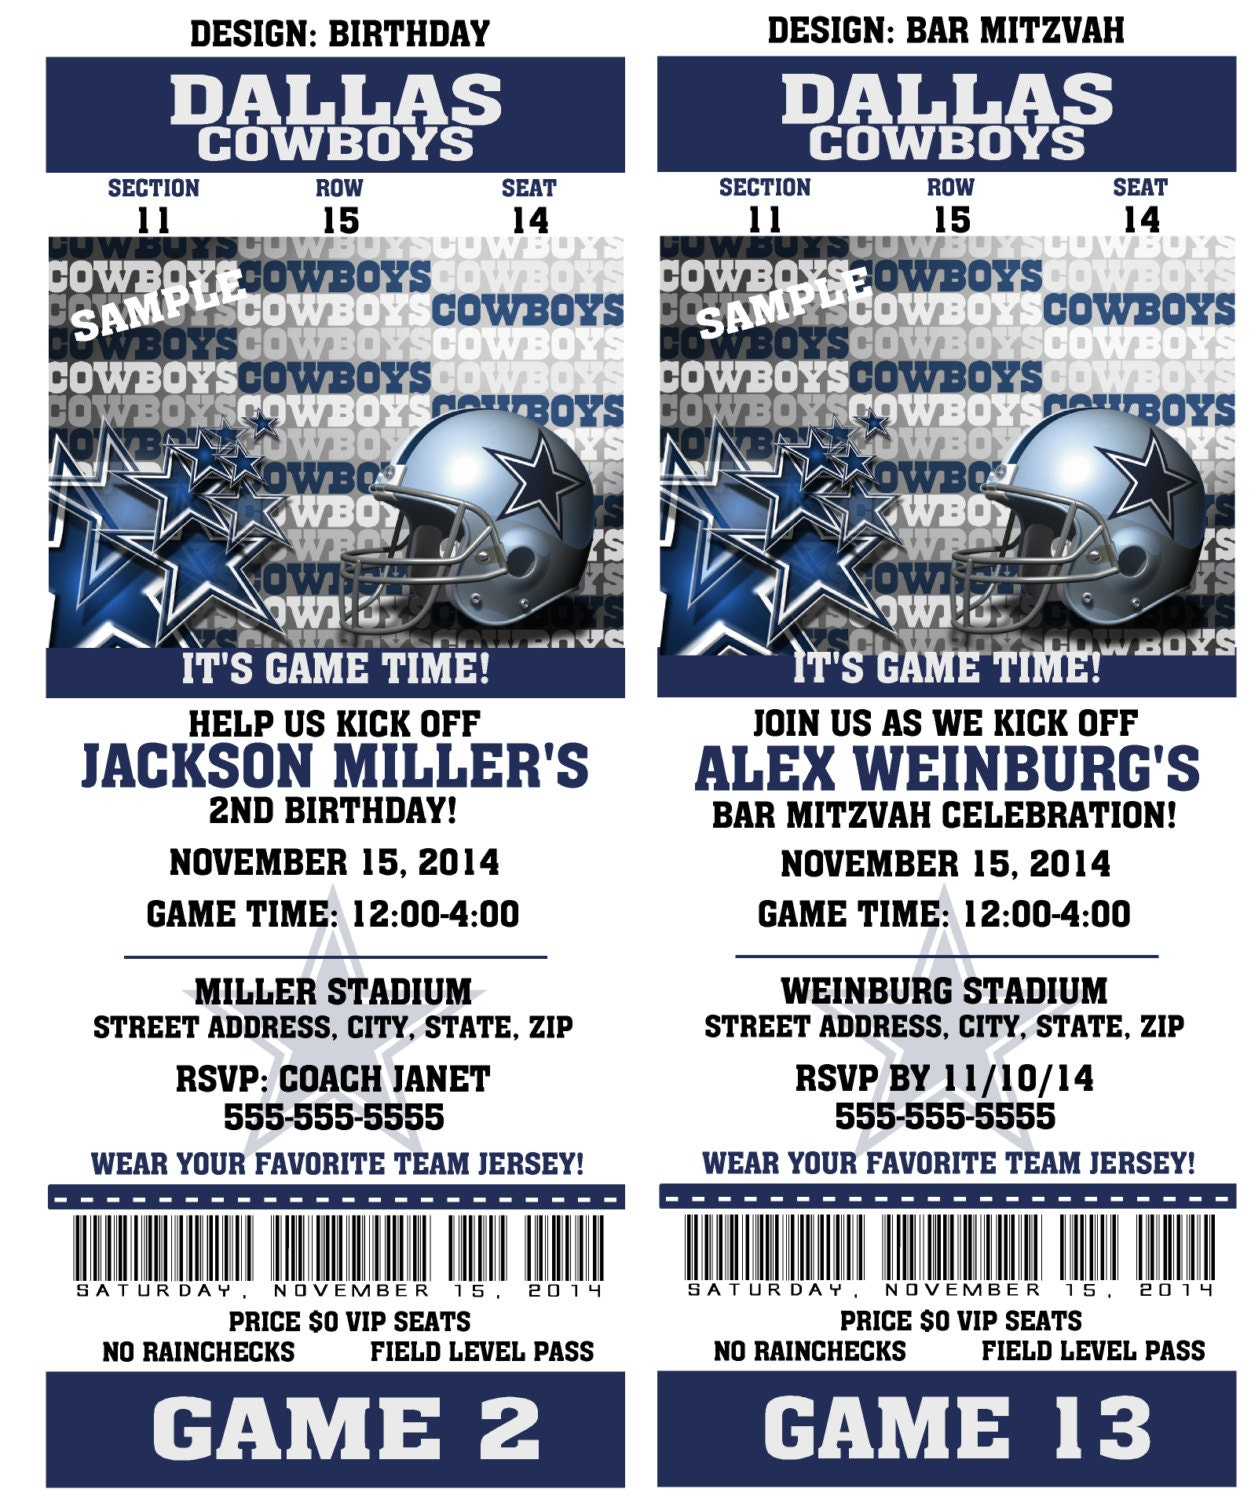 Printable Birthday Party Invitation Card Dallas Cowboys – Dallas Cowboys Party Invitations